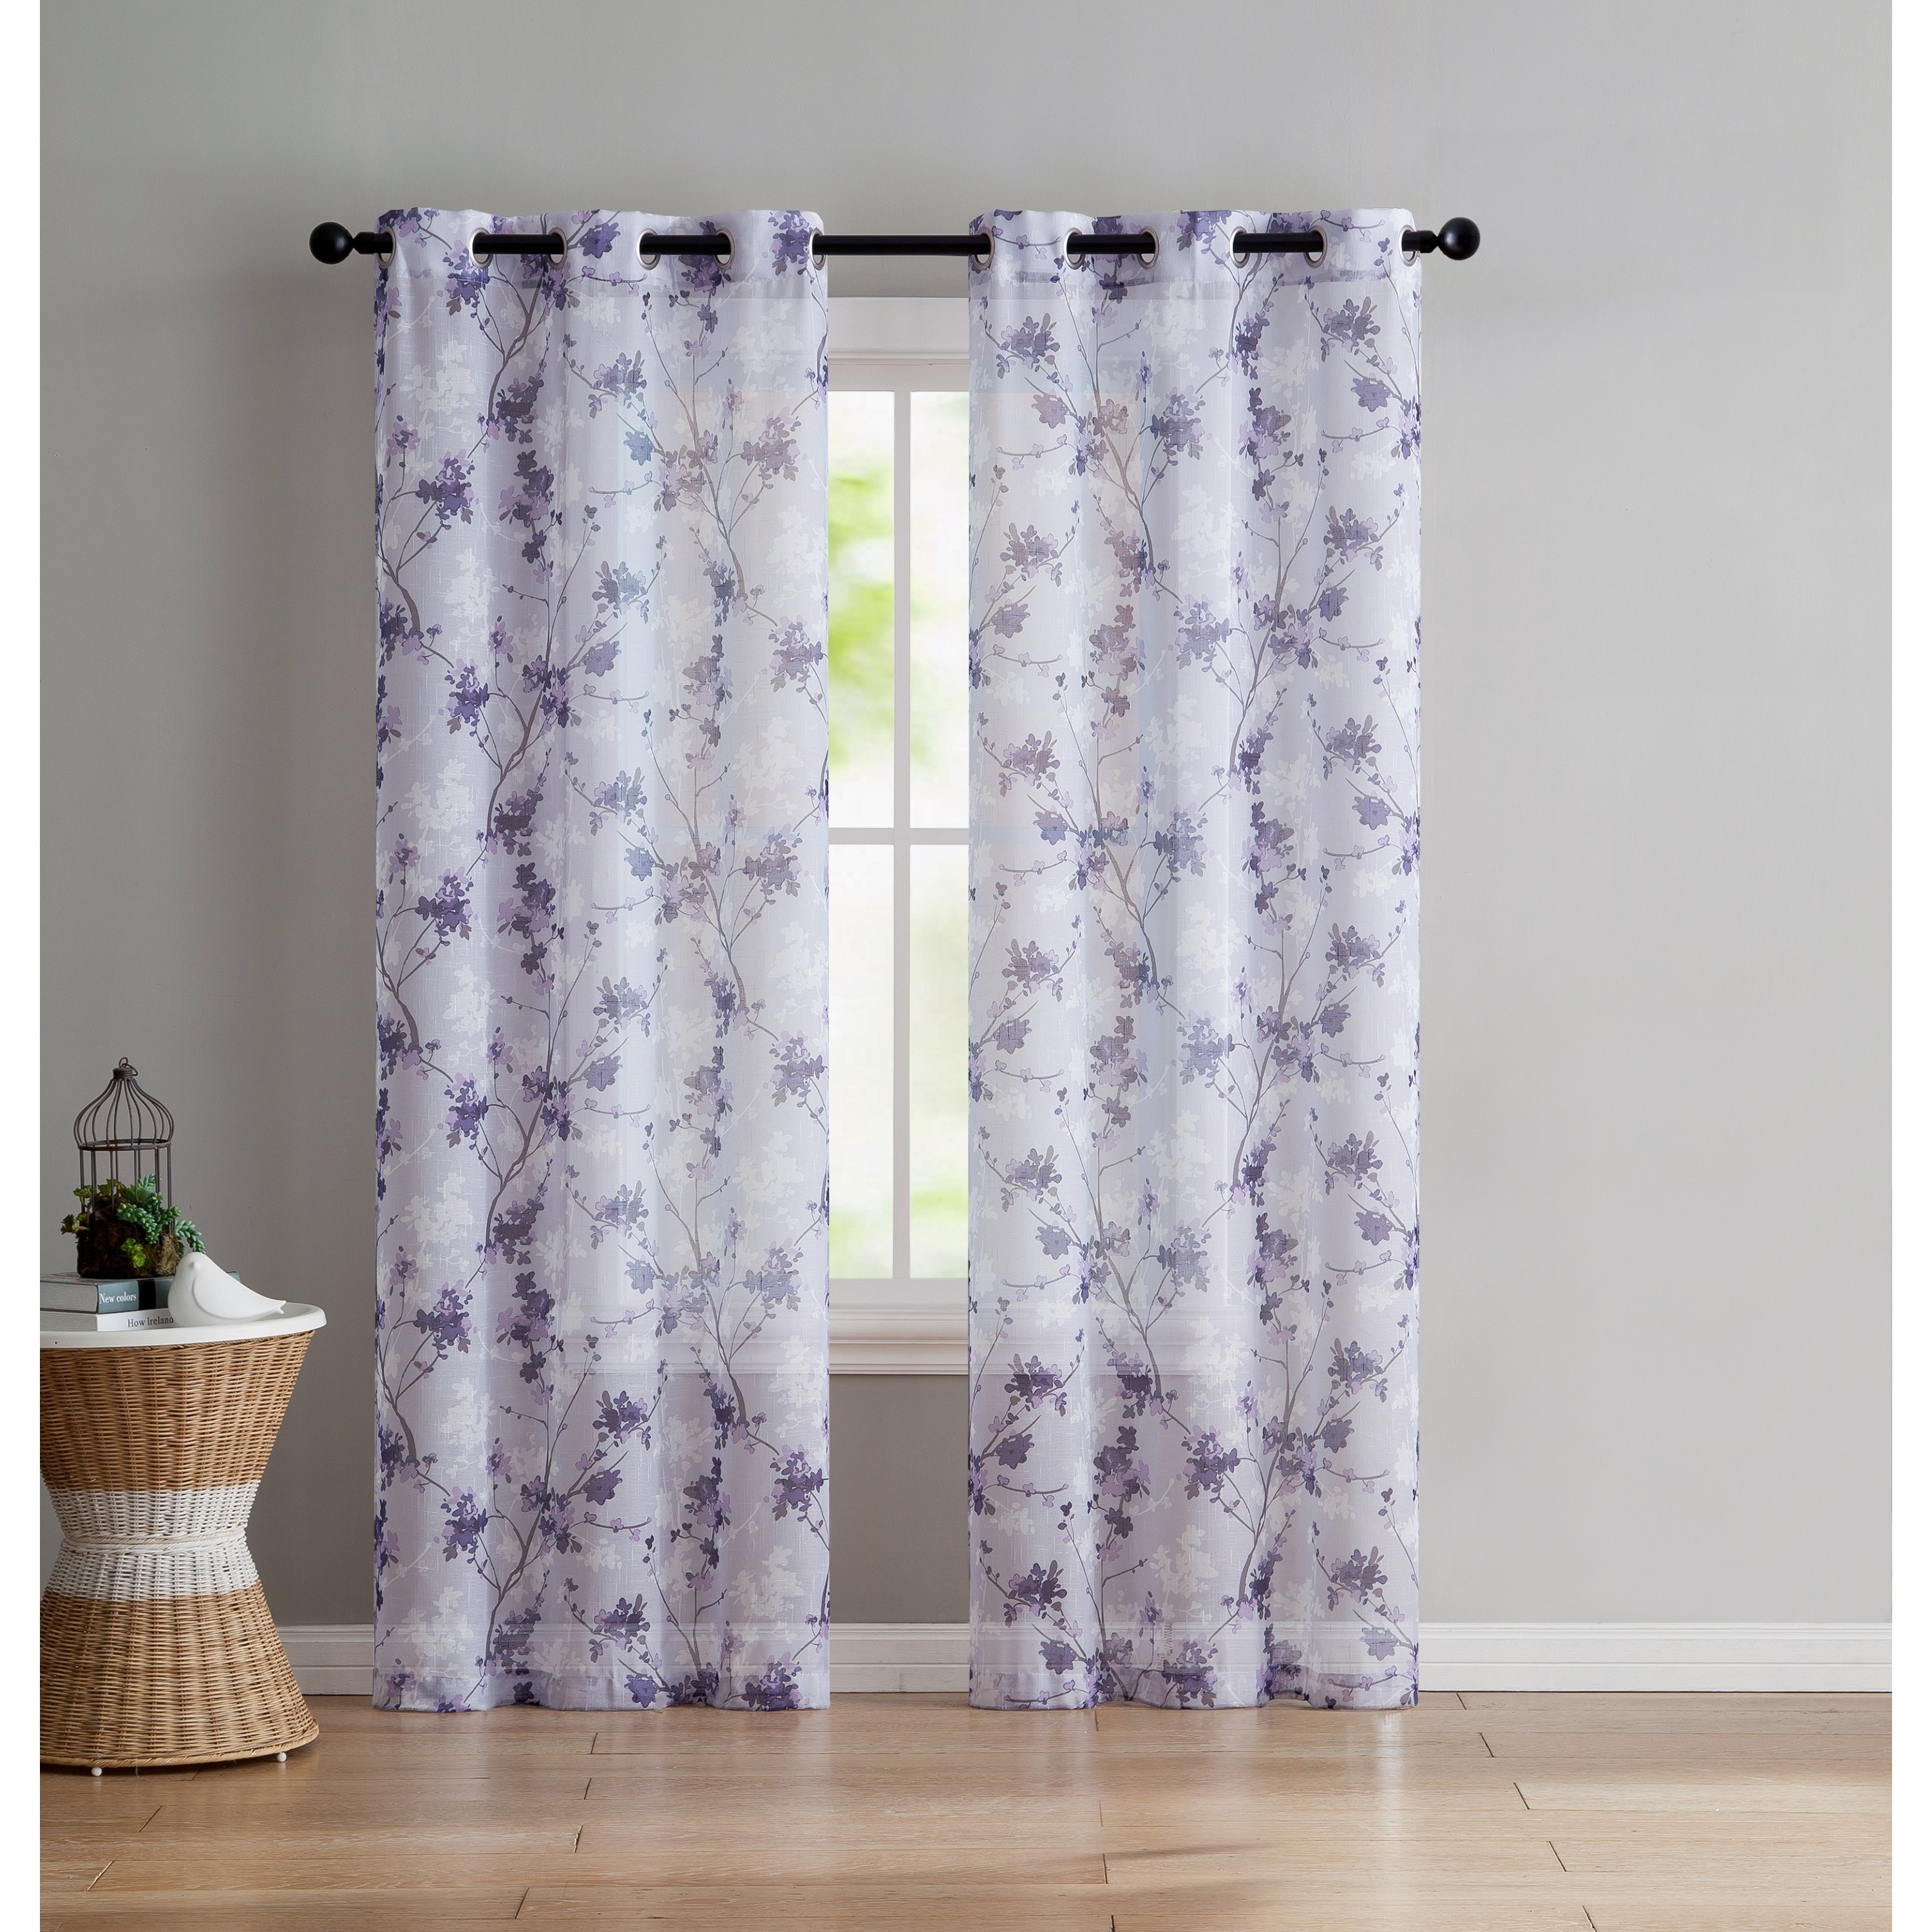 curtain picture purple photograph photos free of ande ideas texture shower scarlet curtains and blue or surprising deep full drapes size